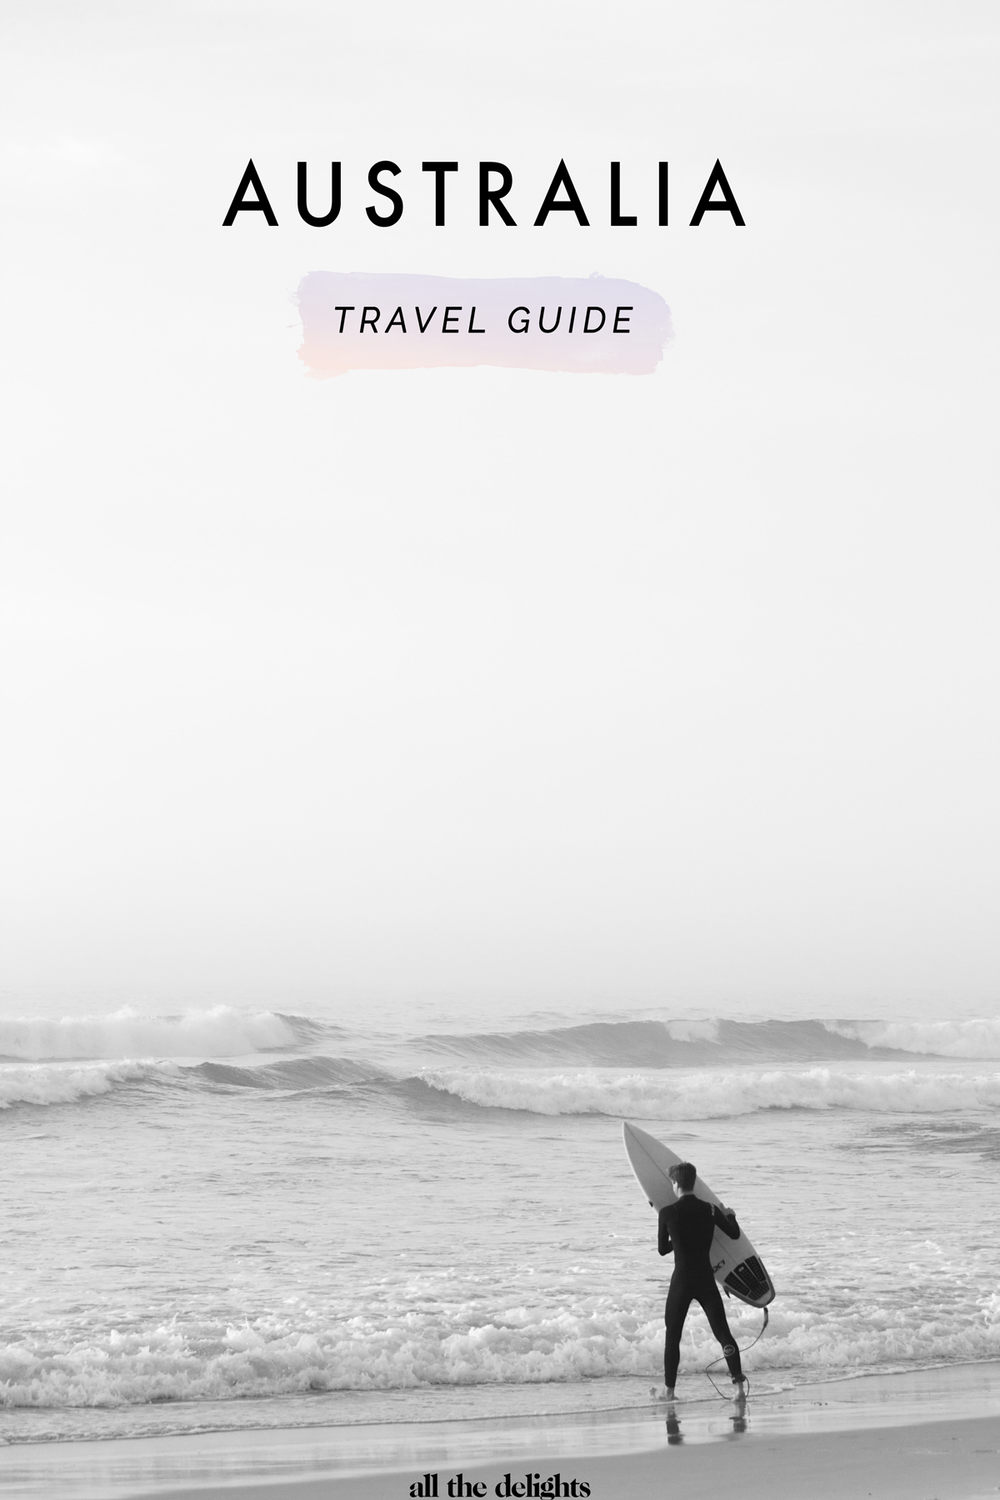 Travel Guide to Australia | Where to go, eat, and find the best coffee in Newcastle, Gold Coast, Byron Bay